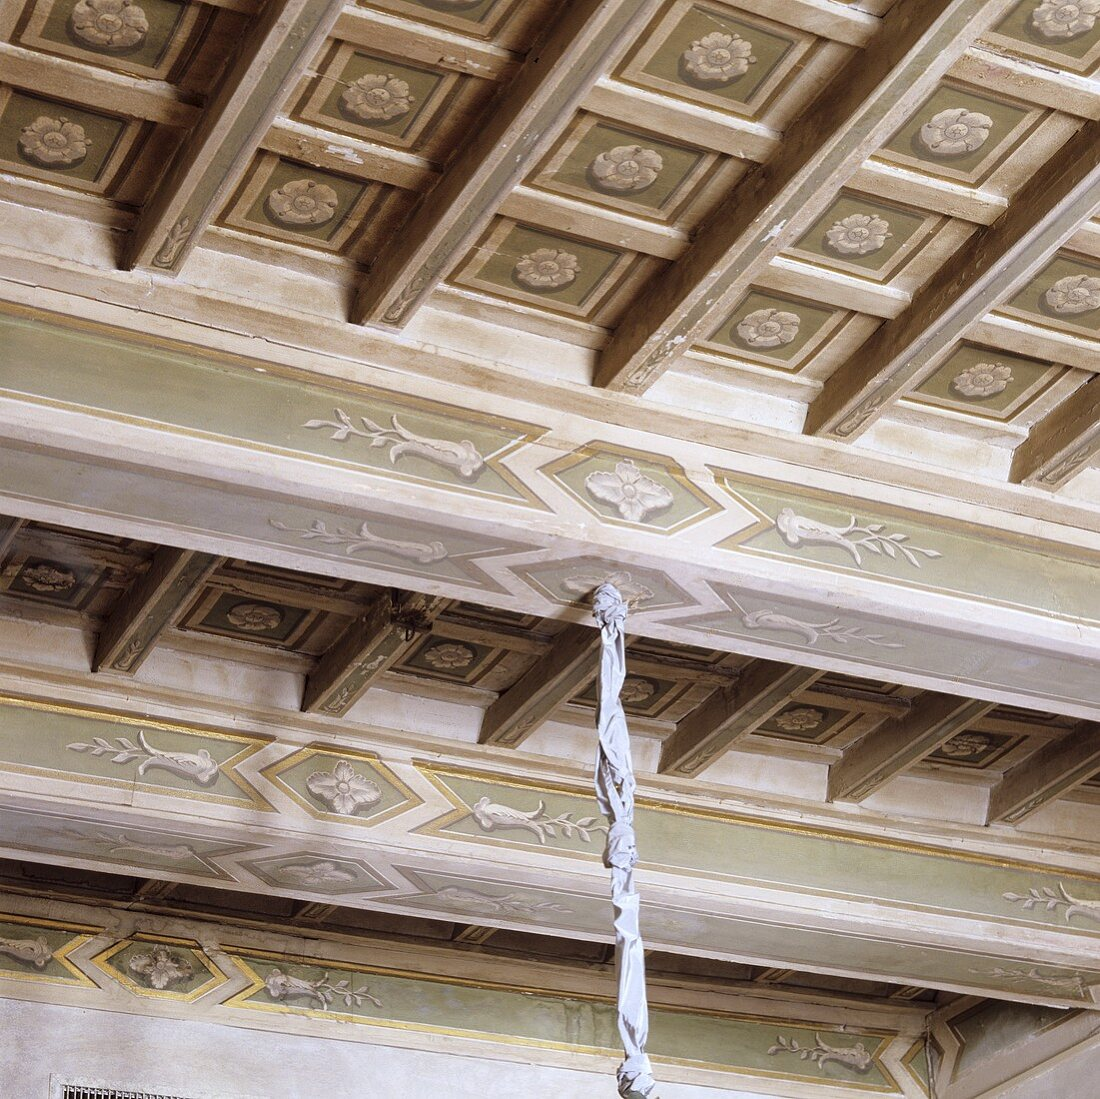 A painted coffered ceiling in a palazzo